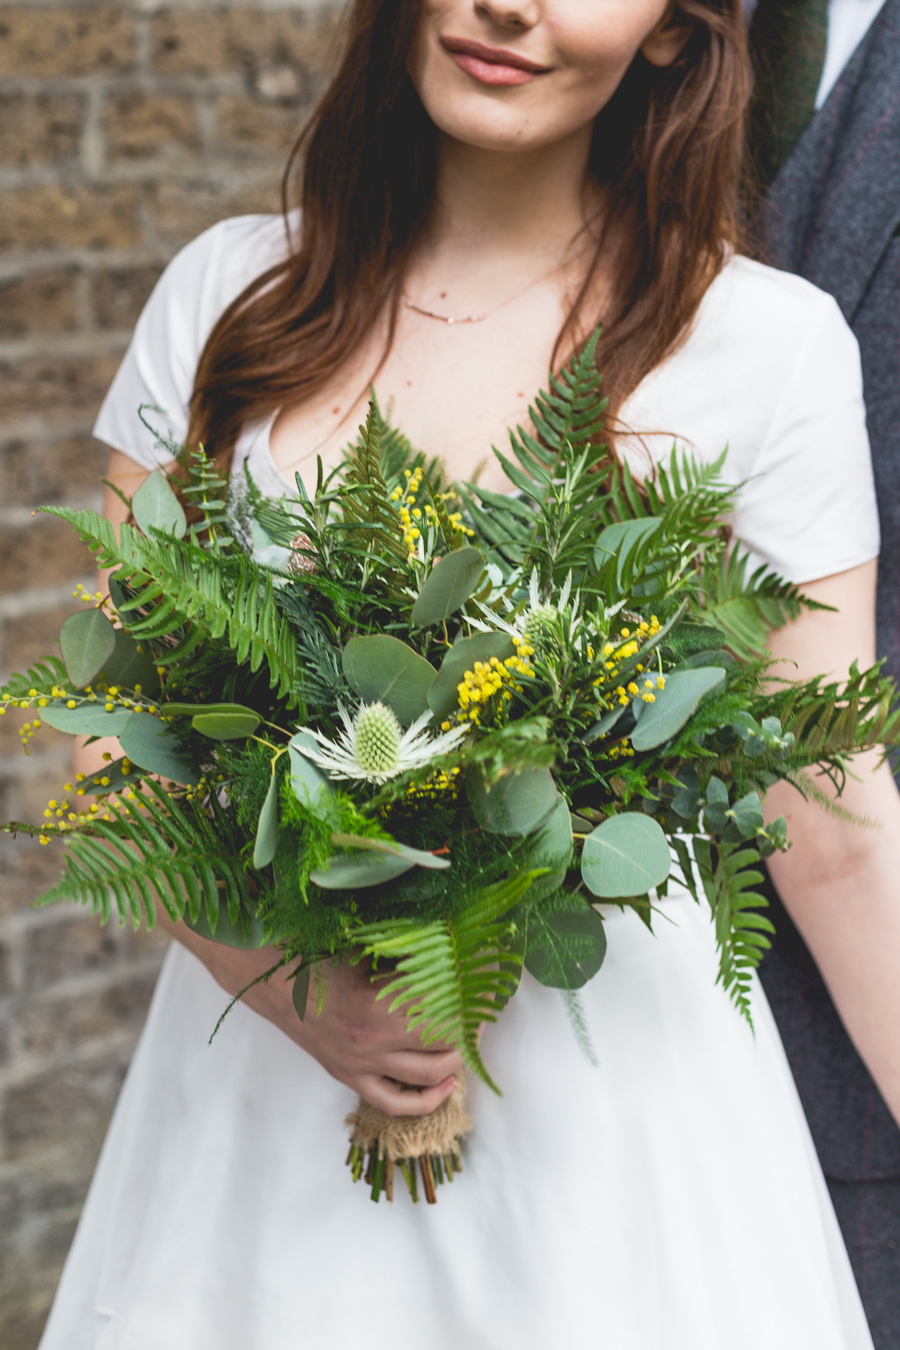 Lucy Long Photography – Industrial Botanical shoot-7205